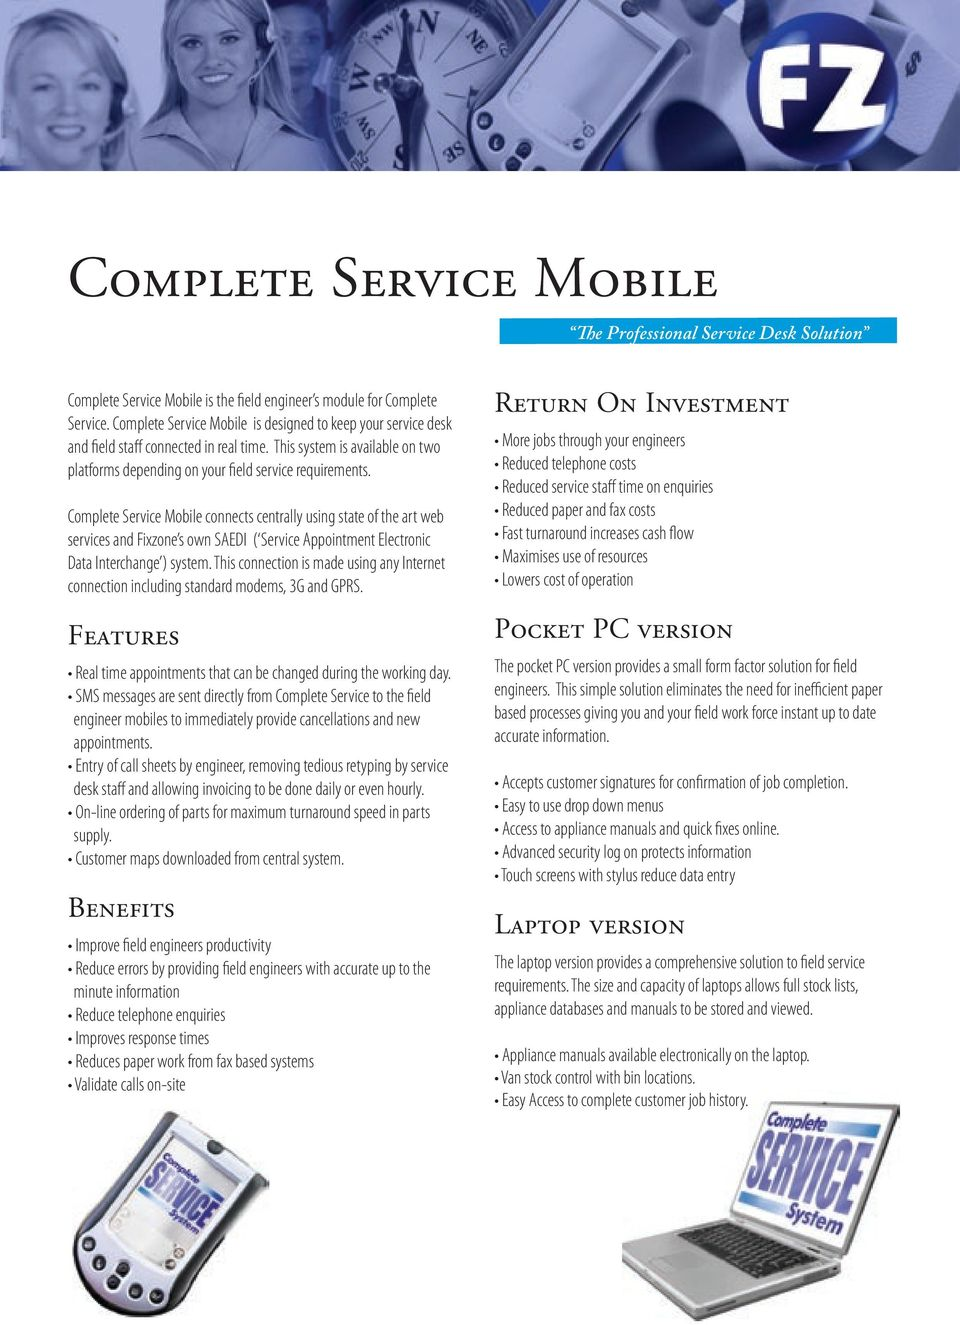 Complete Service Mobile connects centrally using state of the art web services and Fixzone s own SAEDI ( Service Appointment Electronic Data Interchange ) system.